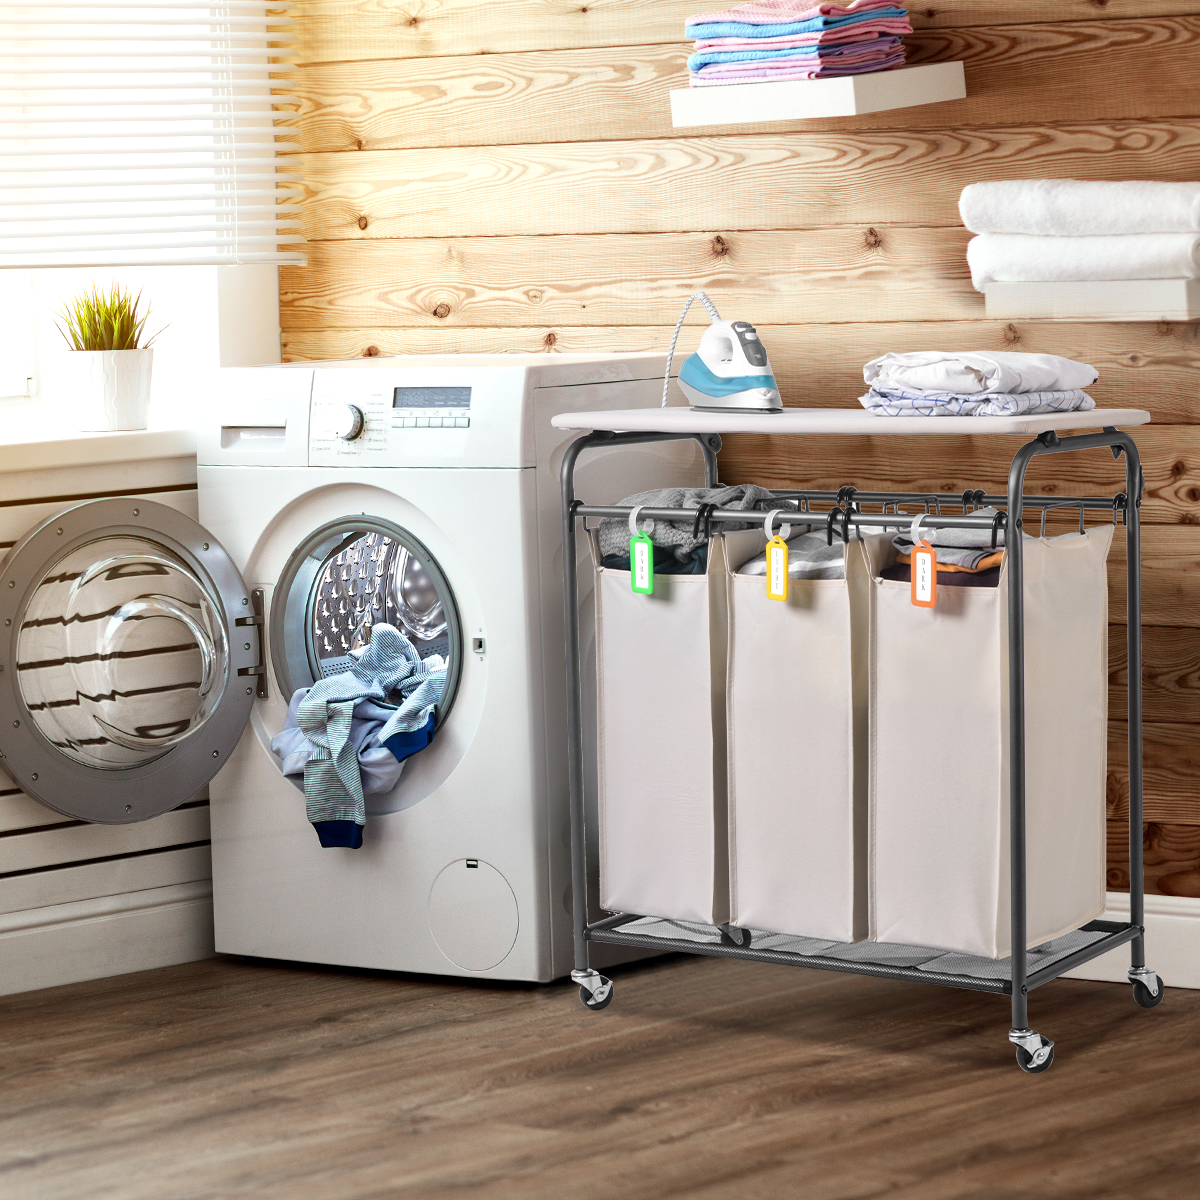 Details About Laundry Cart Basket Triple Bag Sorter Bathroom Hamper Bins Clothes Storage Su347